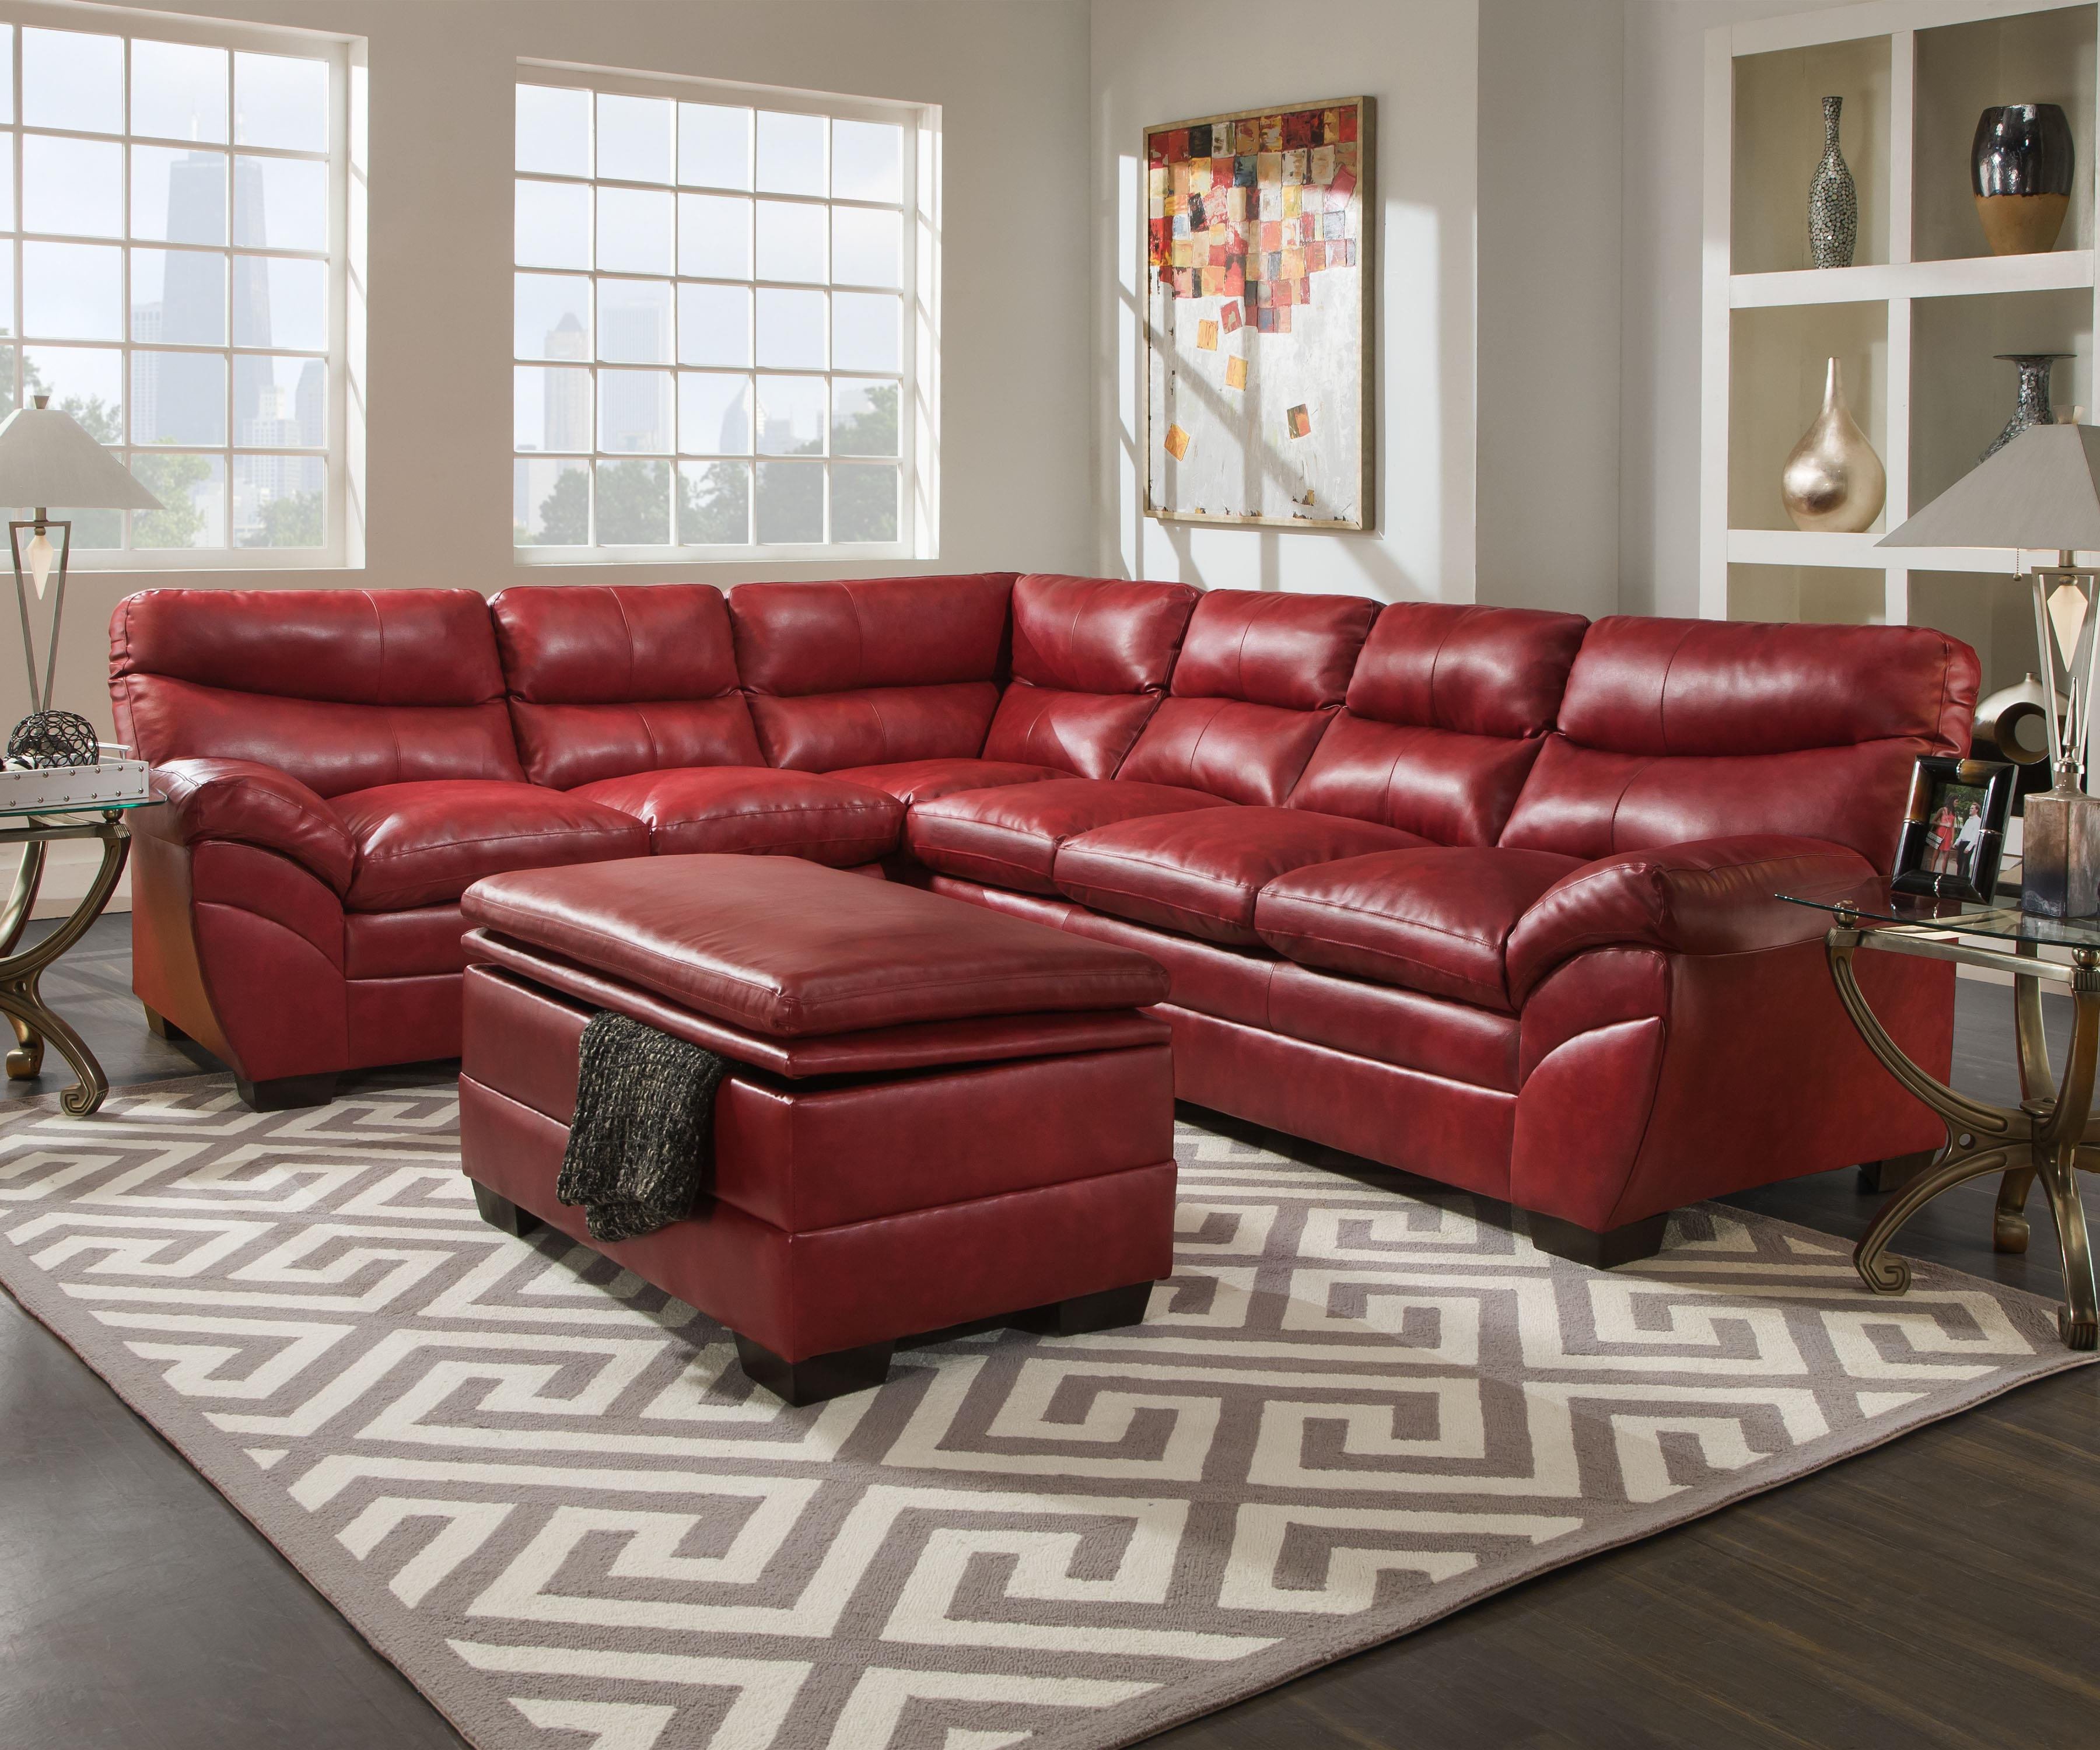 United Furniture Industries 9515 Stationary Living Room Group - Item Number: 9515 Cardinal Living Room Group 2